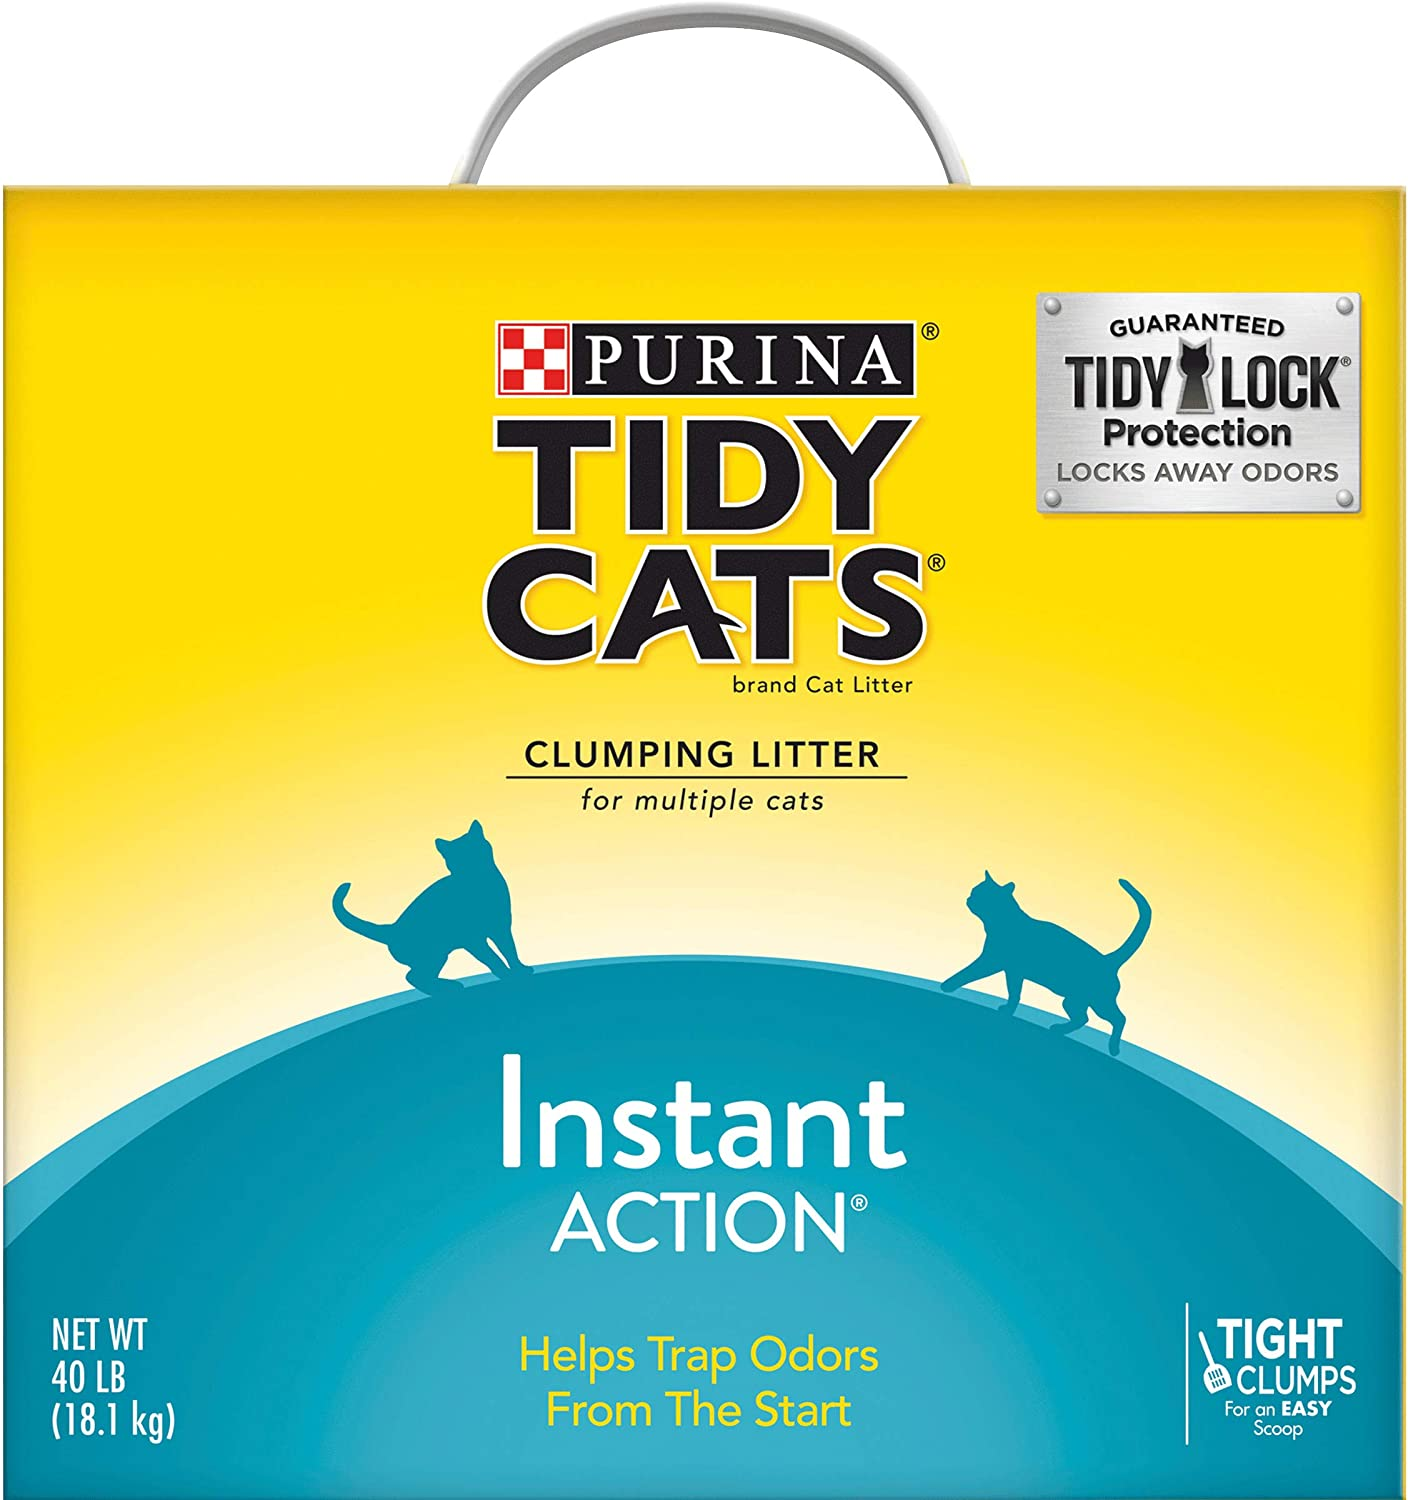 Purina Tidy Cats Clumping Cat Litter, Instant Action Multi Cat Litter - 40 lb. Box : Pet Odor And Stain Removers : Pet Supplies